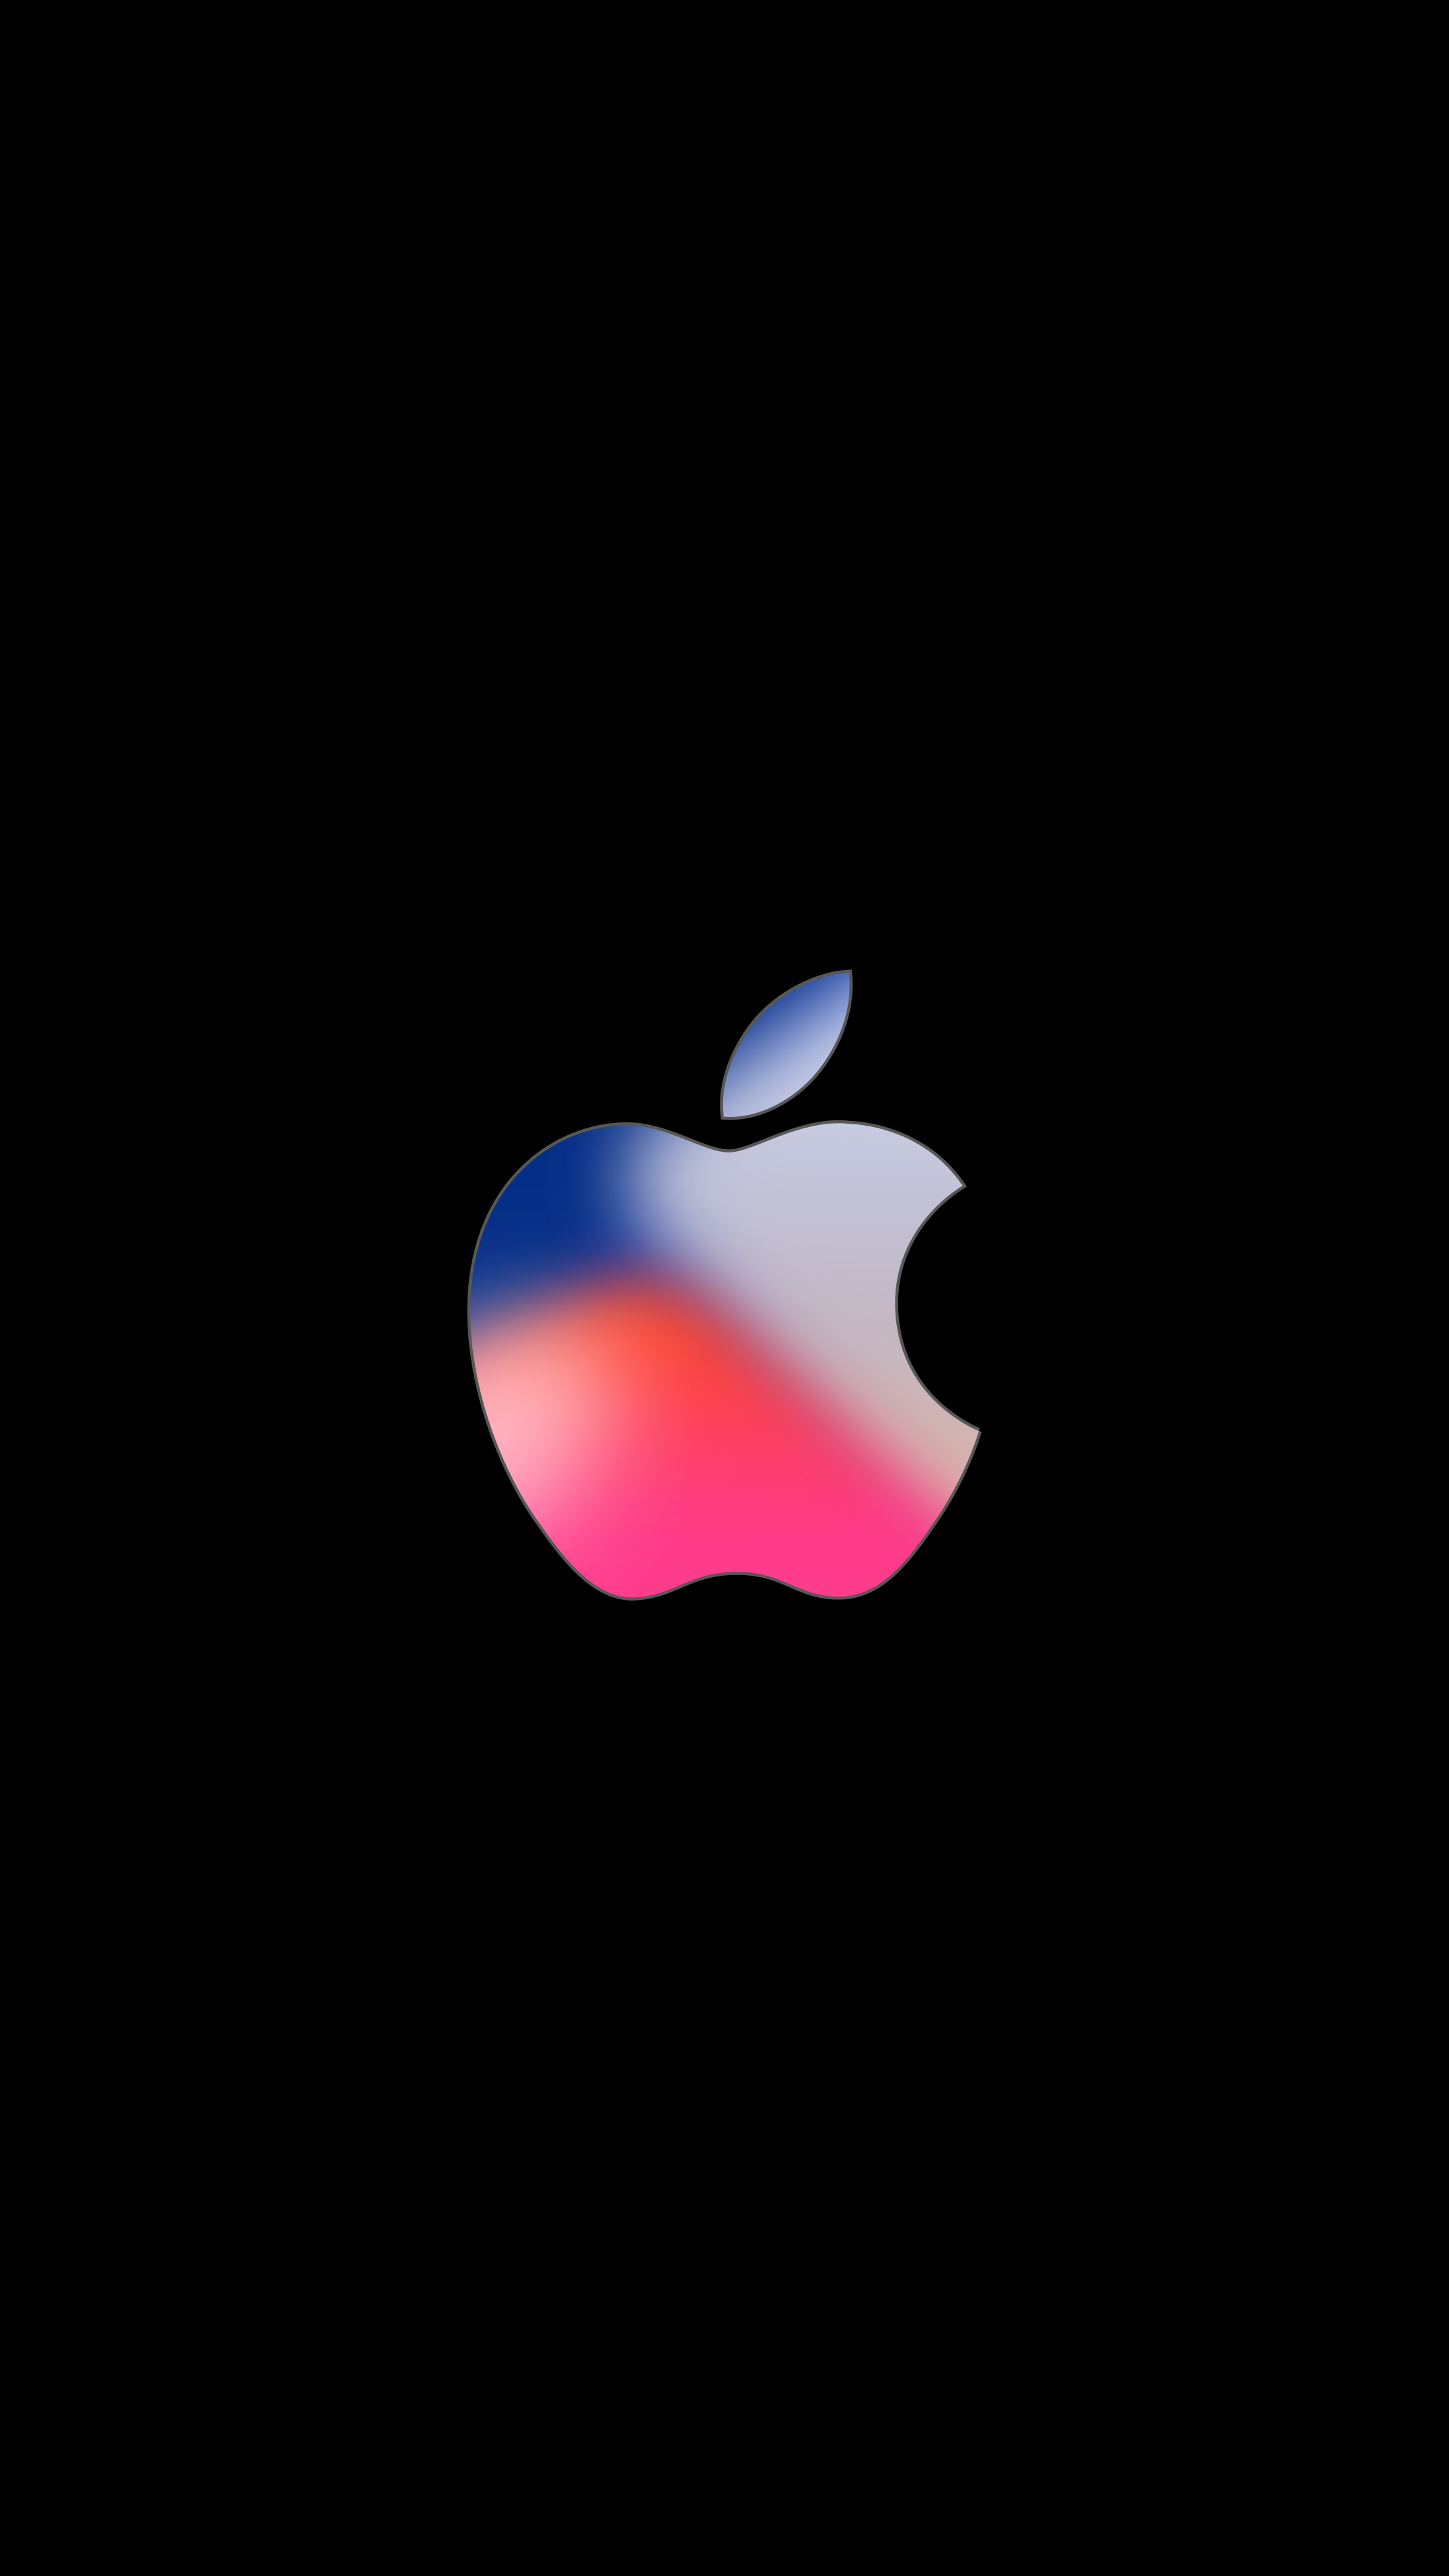 Apple Logo Wallpaper Hd 1080p Logo Wallpaper In 2020 Apple Logo Wallpaper Iphone Apple Wallpaper Apple Wallpaper Iphone